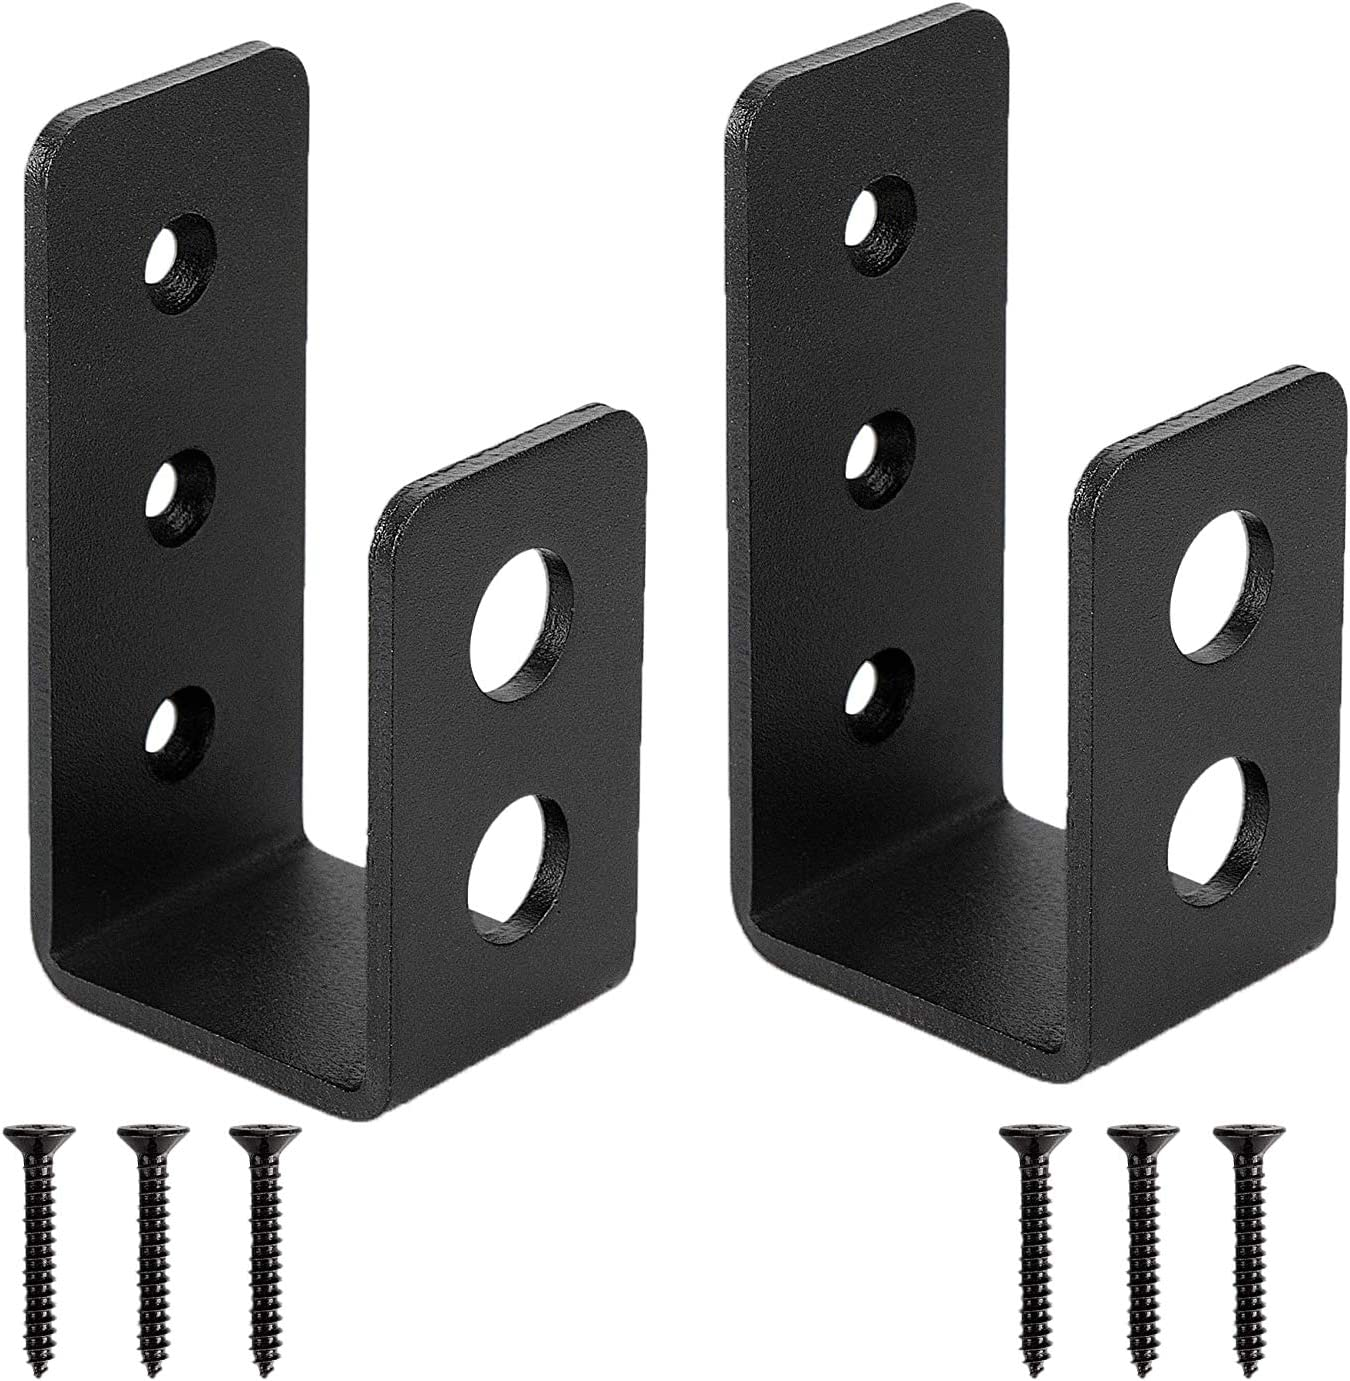 2x4 Door Barricade Brackets| Door Barricade Closed Bar Holder| Heavy Duty Steel Drop Open Bar Security Door Lock U Bracket Fits 2x4 Boards,Tool Hanger for Your Home,Barn,Gate,Shed,Garage (2)